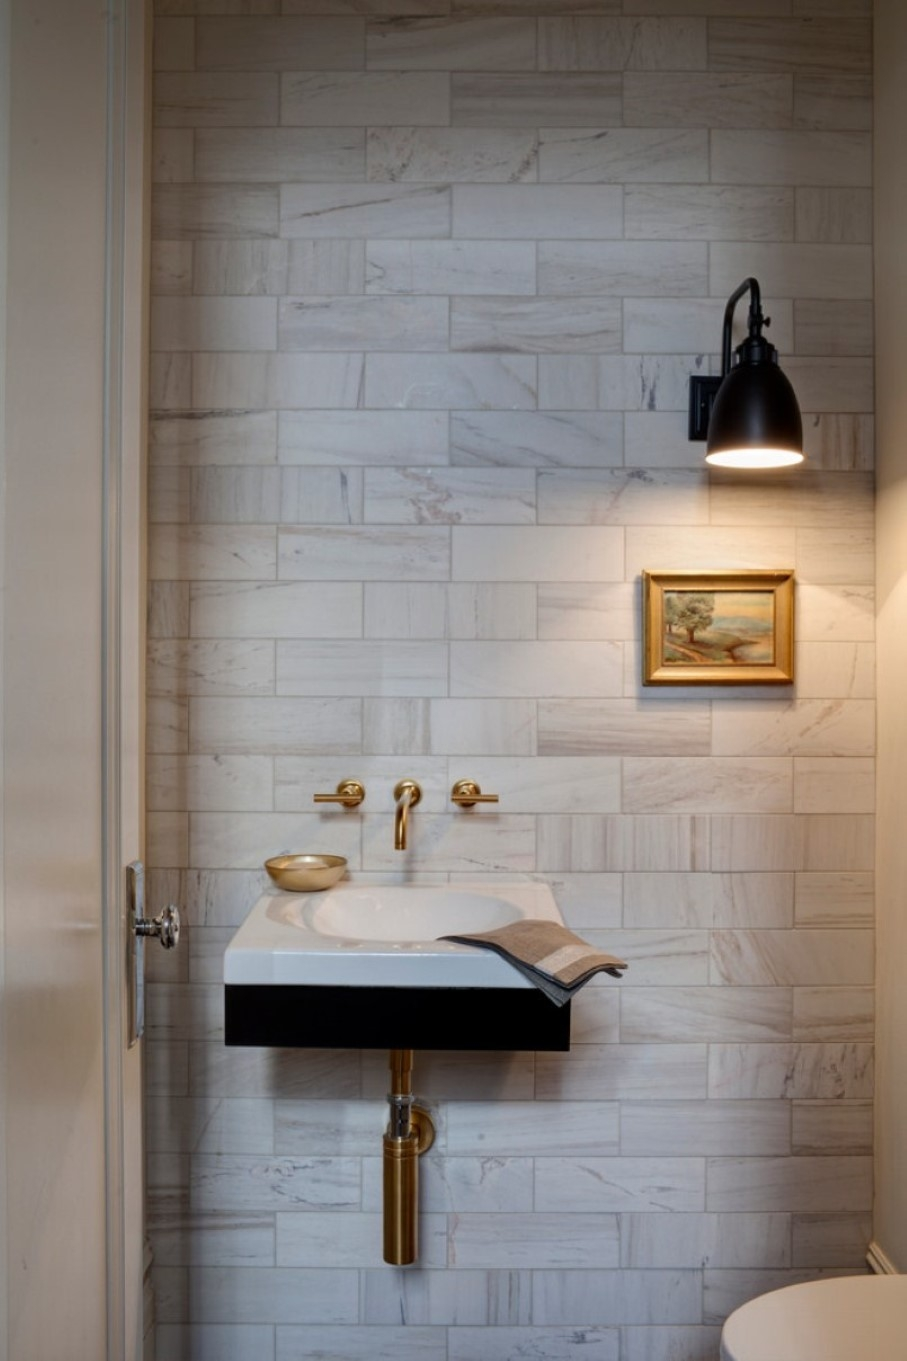 Ideas, cool powder room faucets cool powder room faucets inspiring wall mount faucets in comely bathrooms designoursign 907 x 1361  .